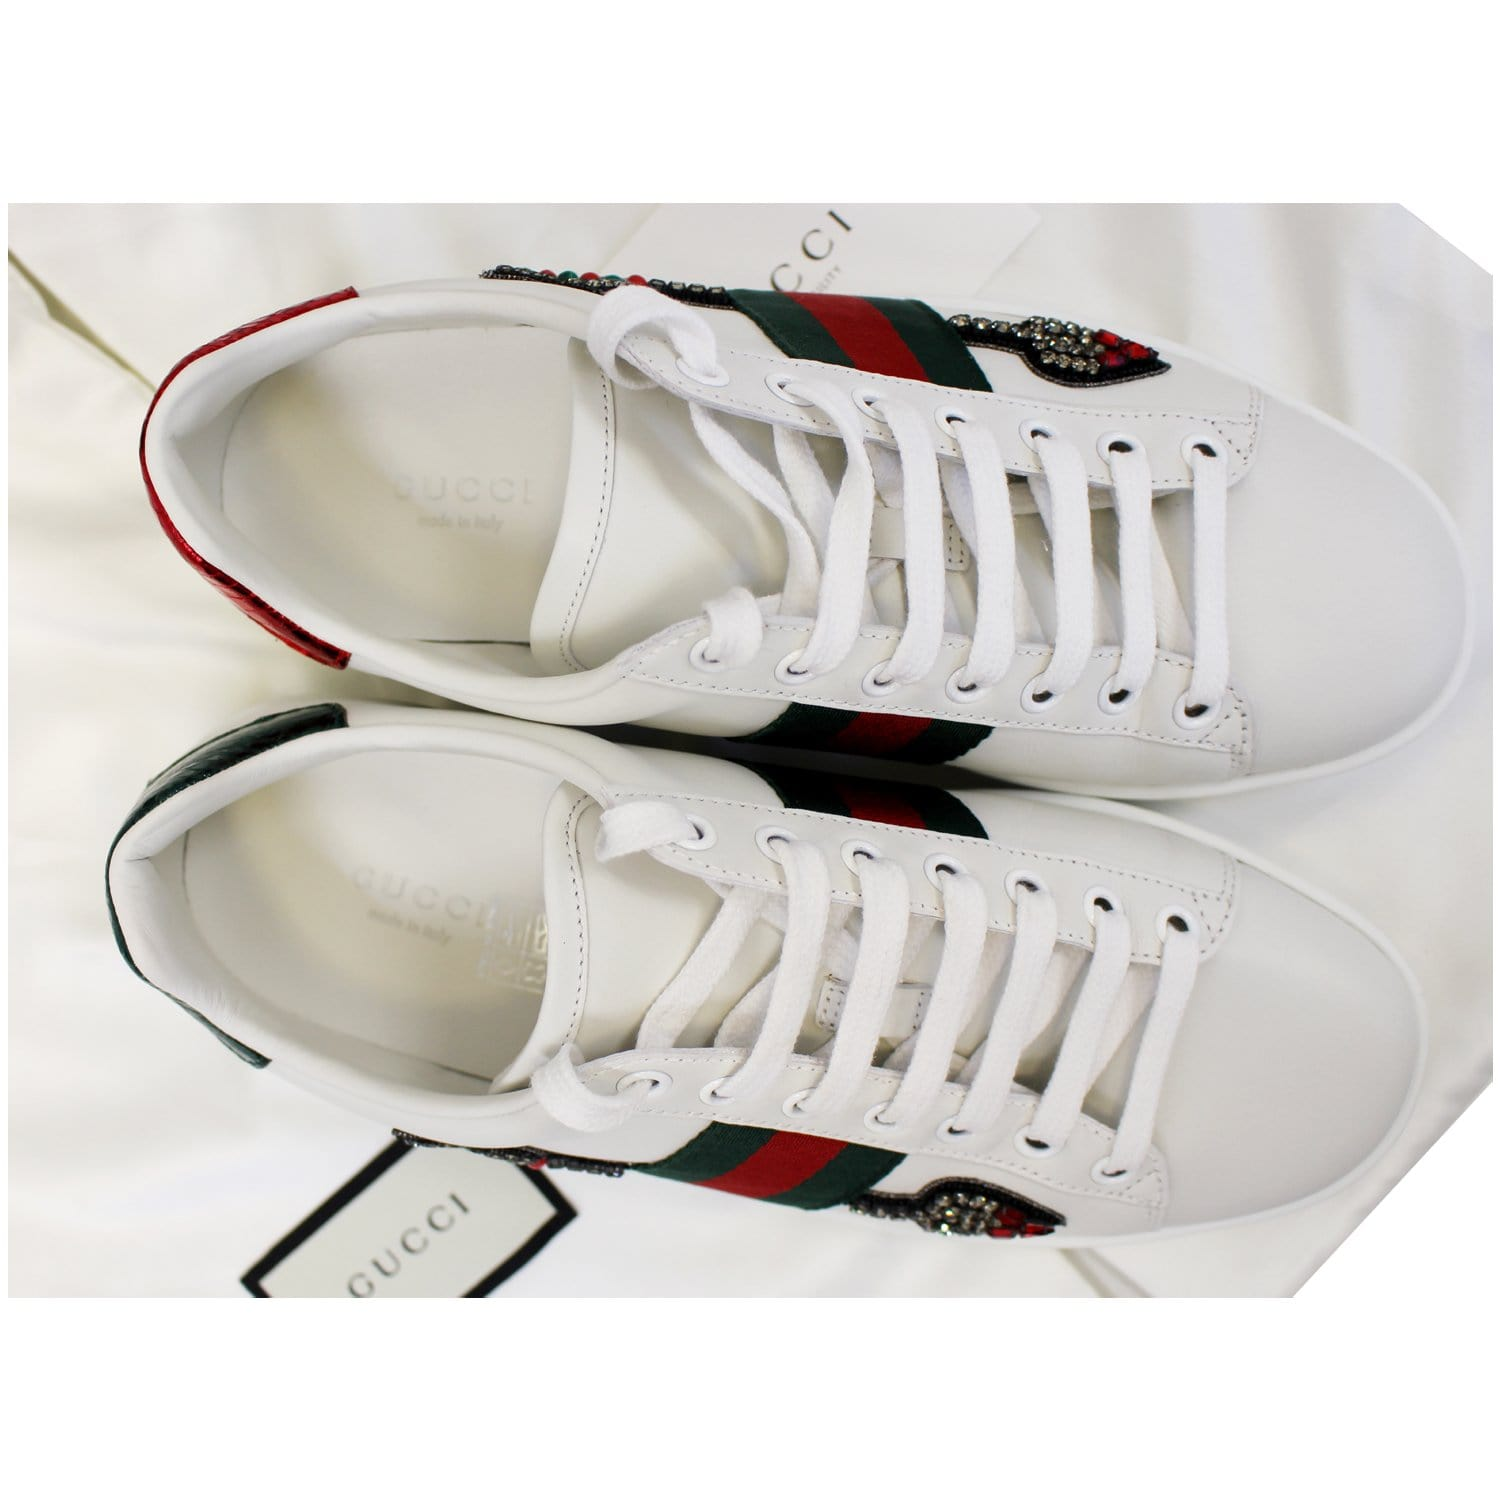 0d6b2da032c GUCCI Ace Embroidered Arrow Logo Sneakers Size US 7.5-US